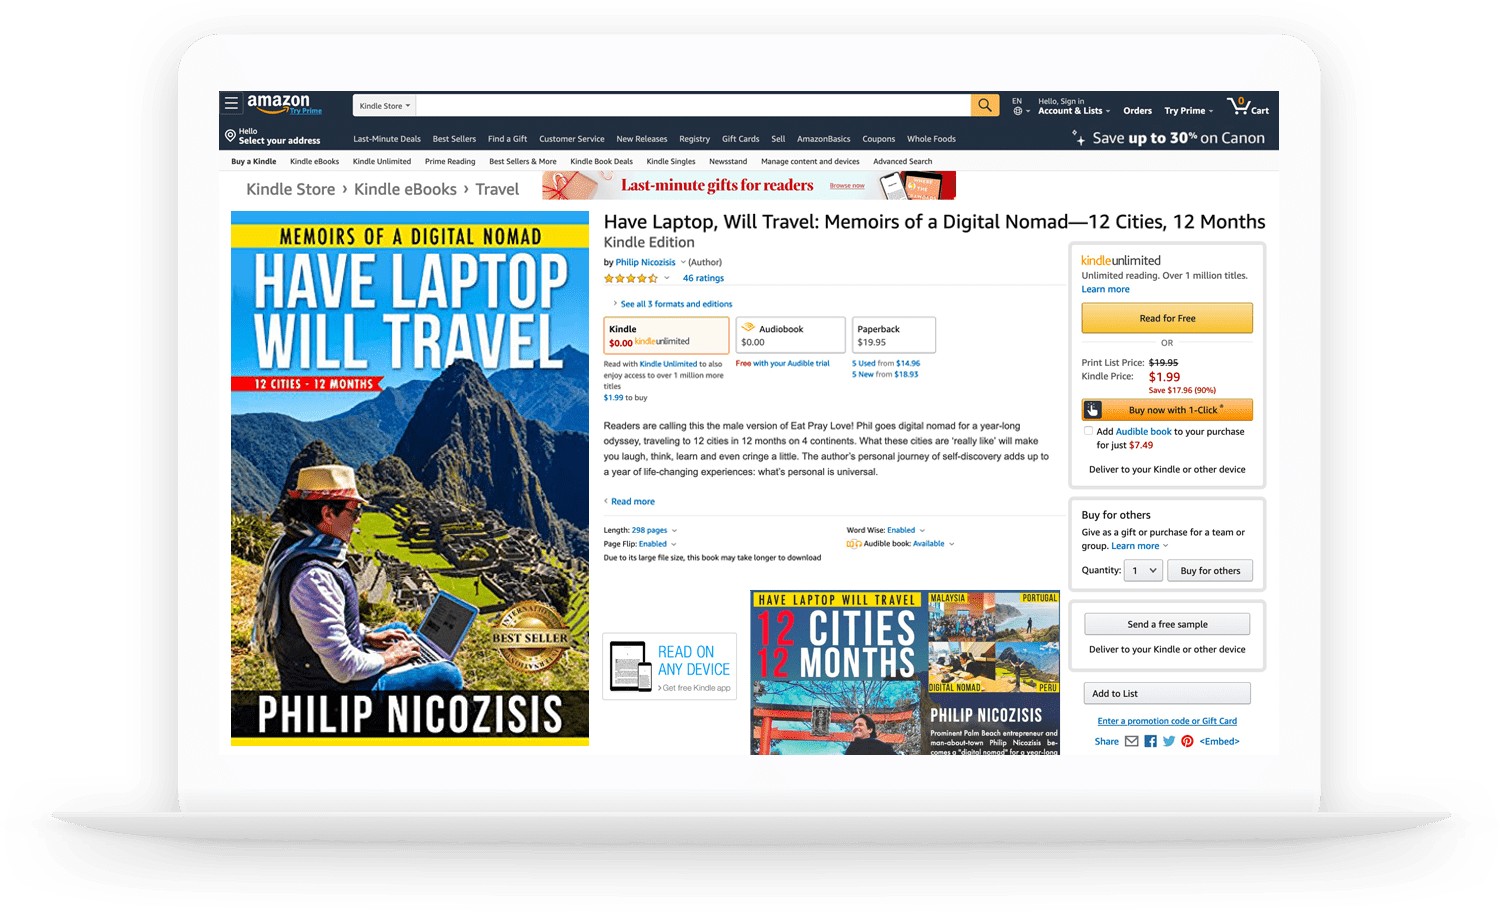 CPU HAVE LAP TOP WILL TRAVEL PHILIP NICOZISIS MEMOIRS OF A DIGITAL NOMAD AMAZON BEST SELLER